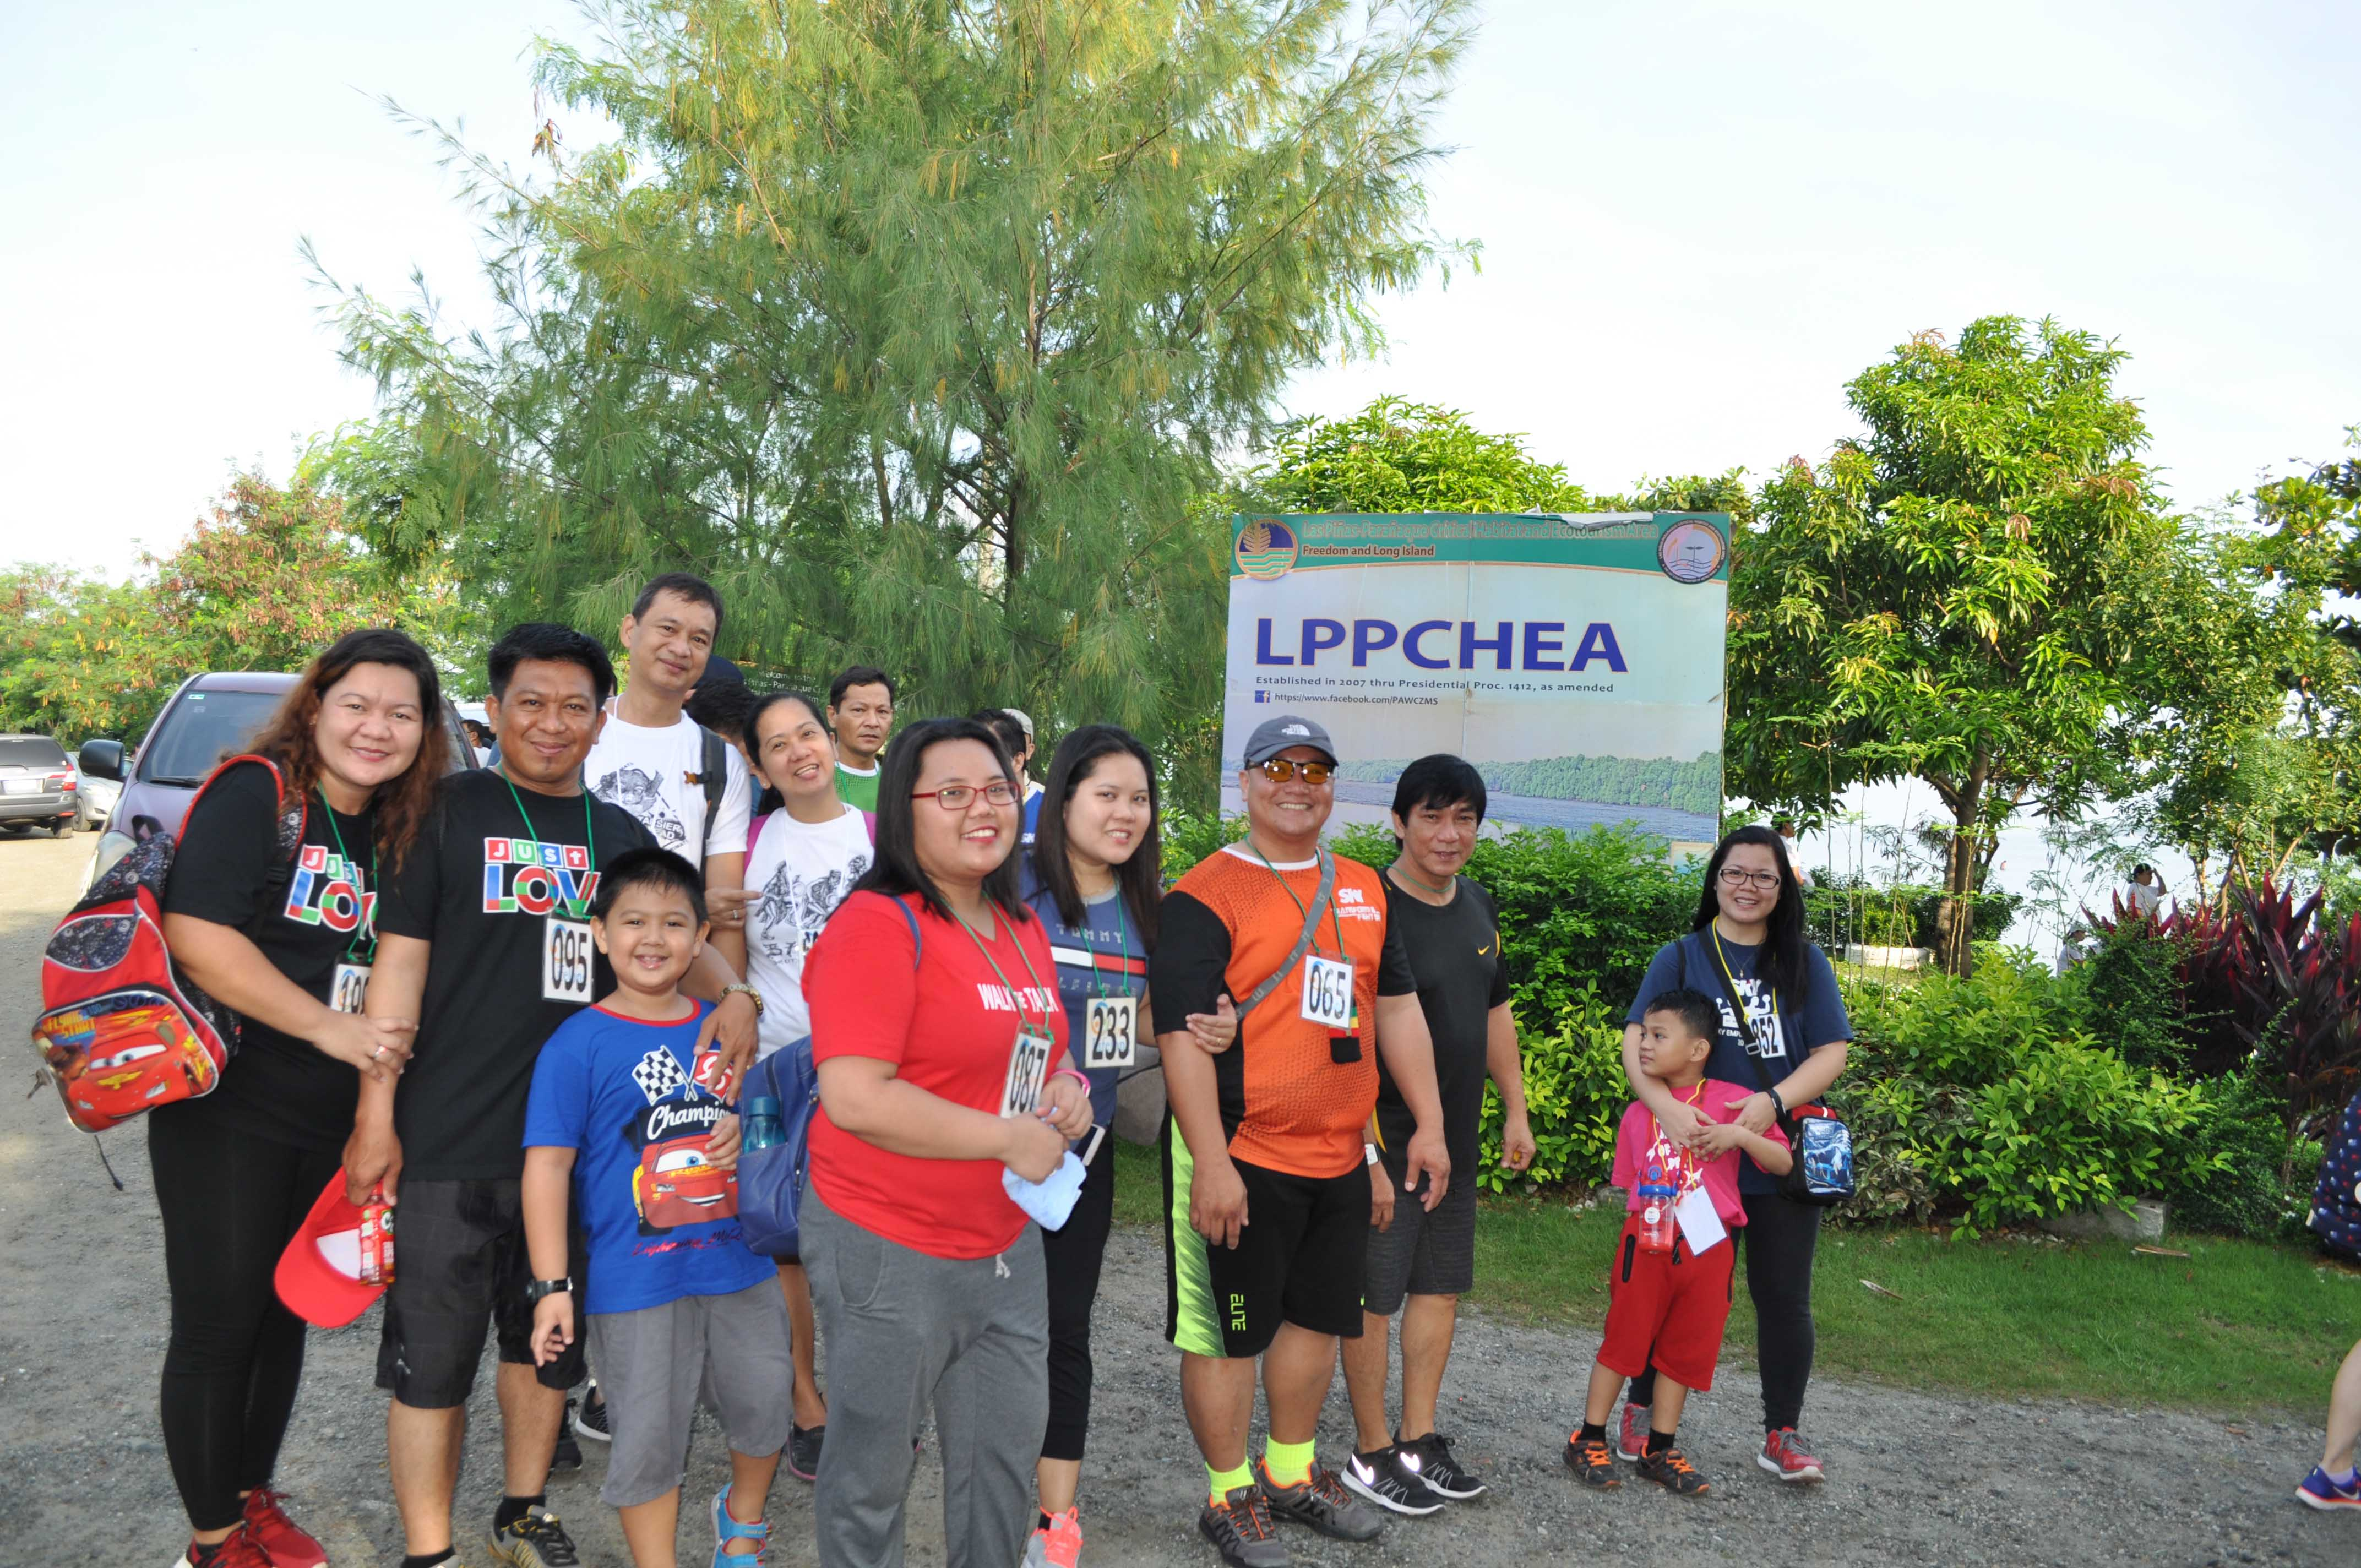 A souvenir shot at the LPPCHEA signboard